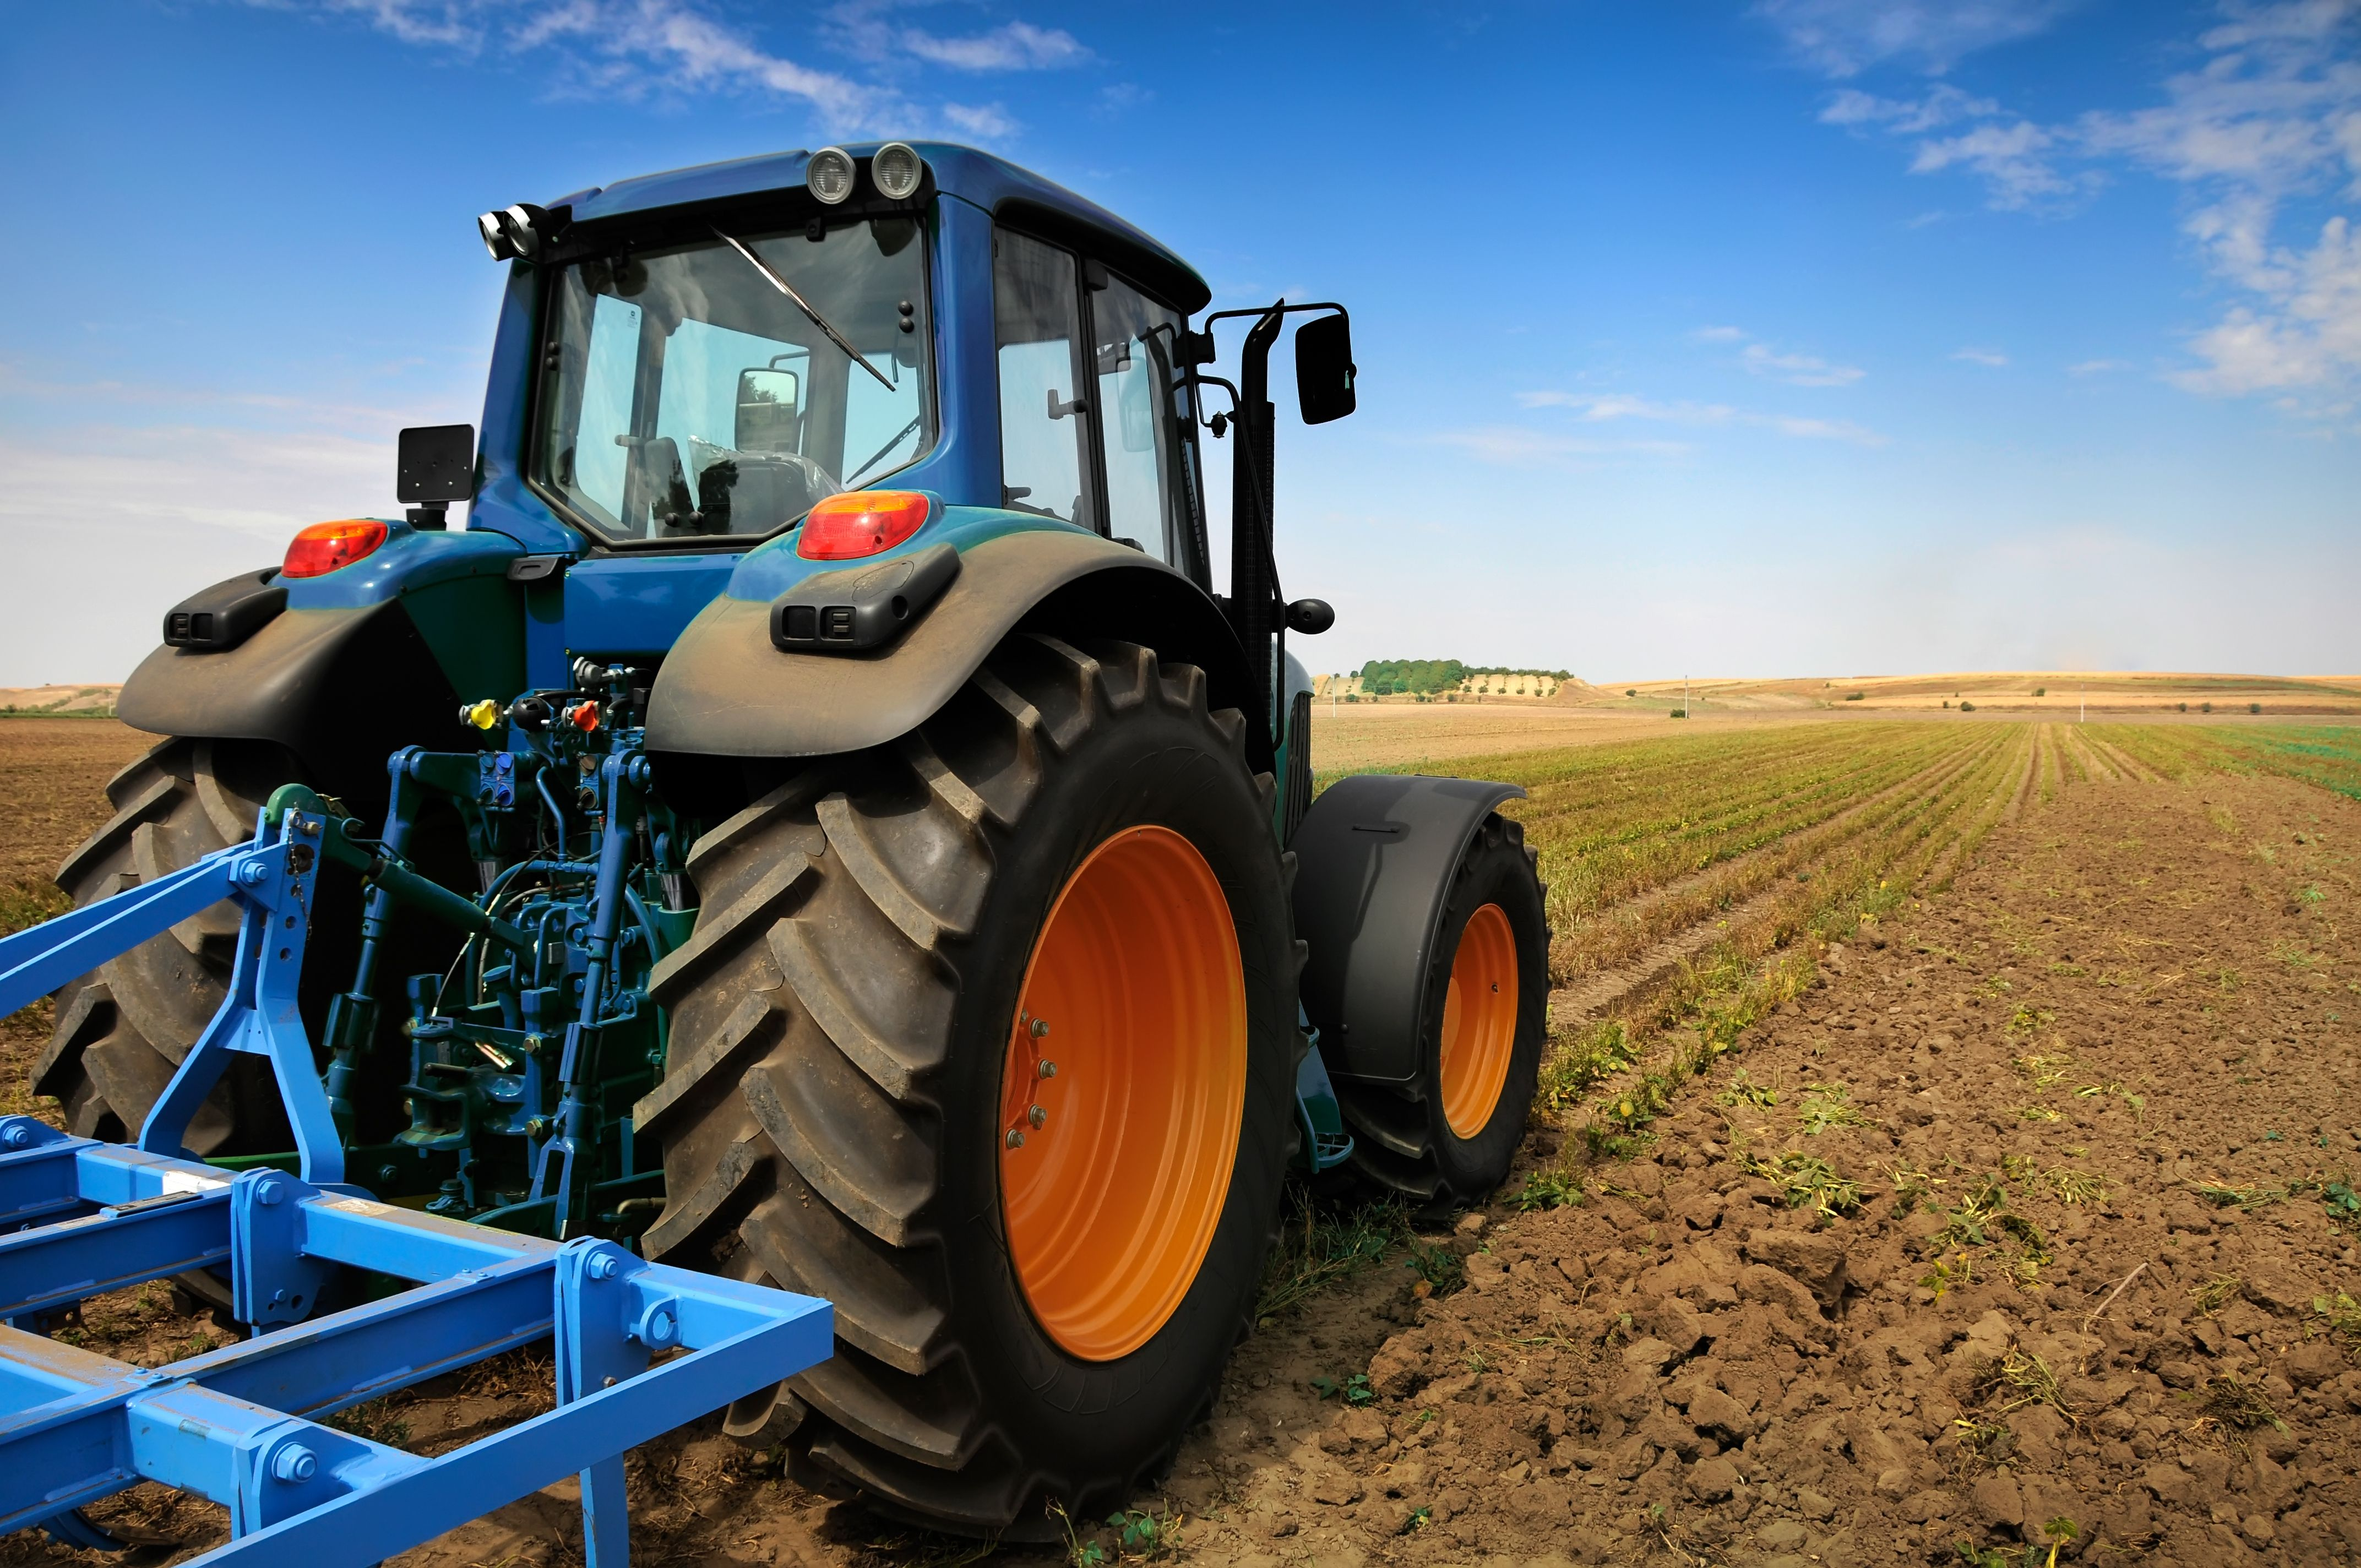 The Southern Farm Show is the largest agricultural event